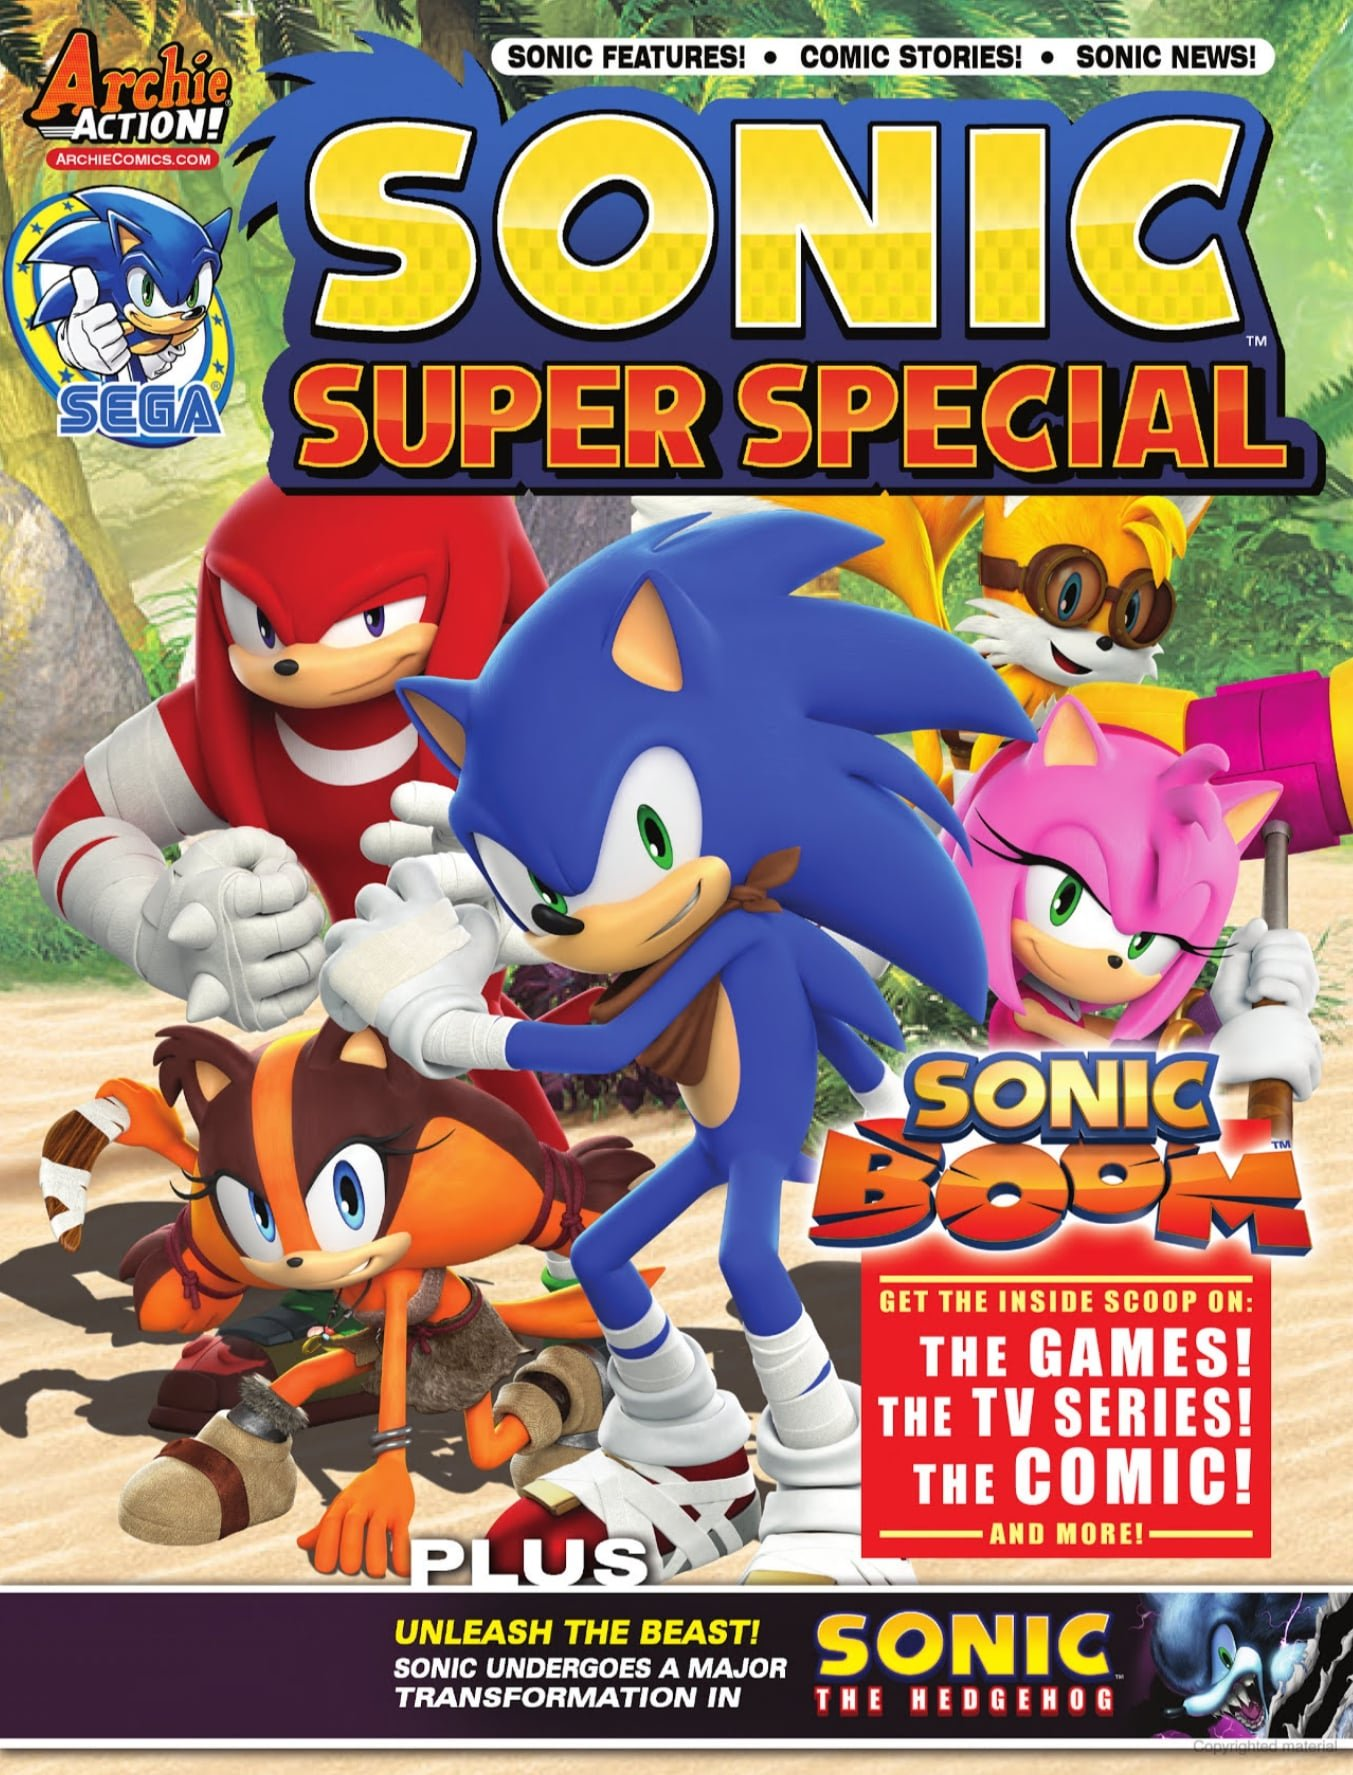 Sonic Super Special Magazine 13 (February 2015)